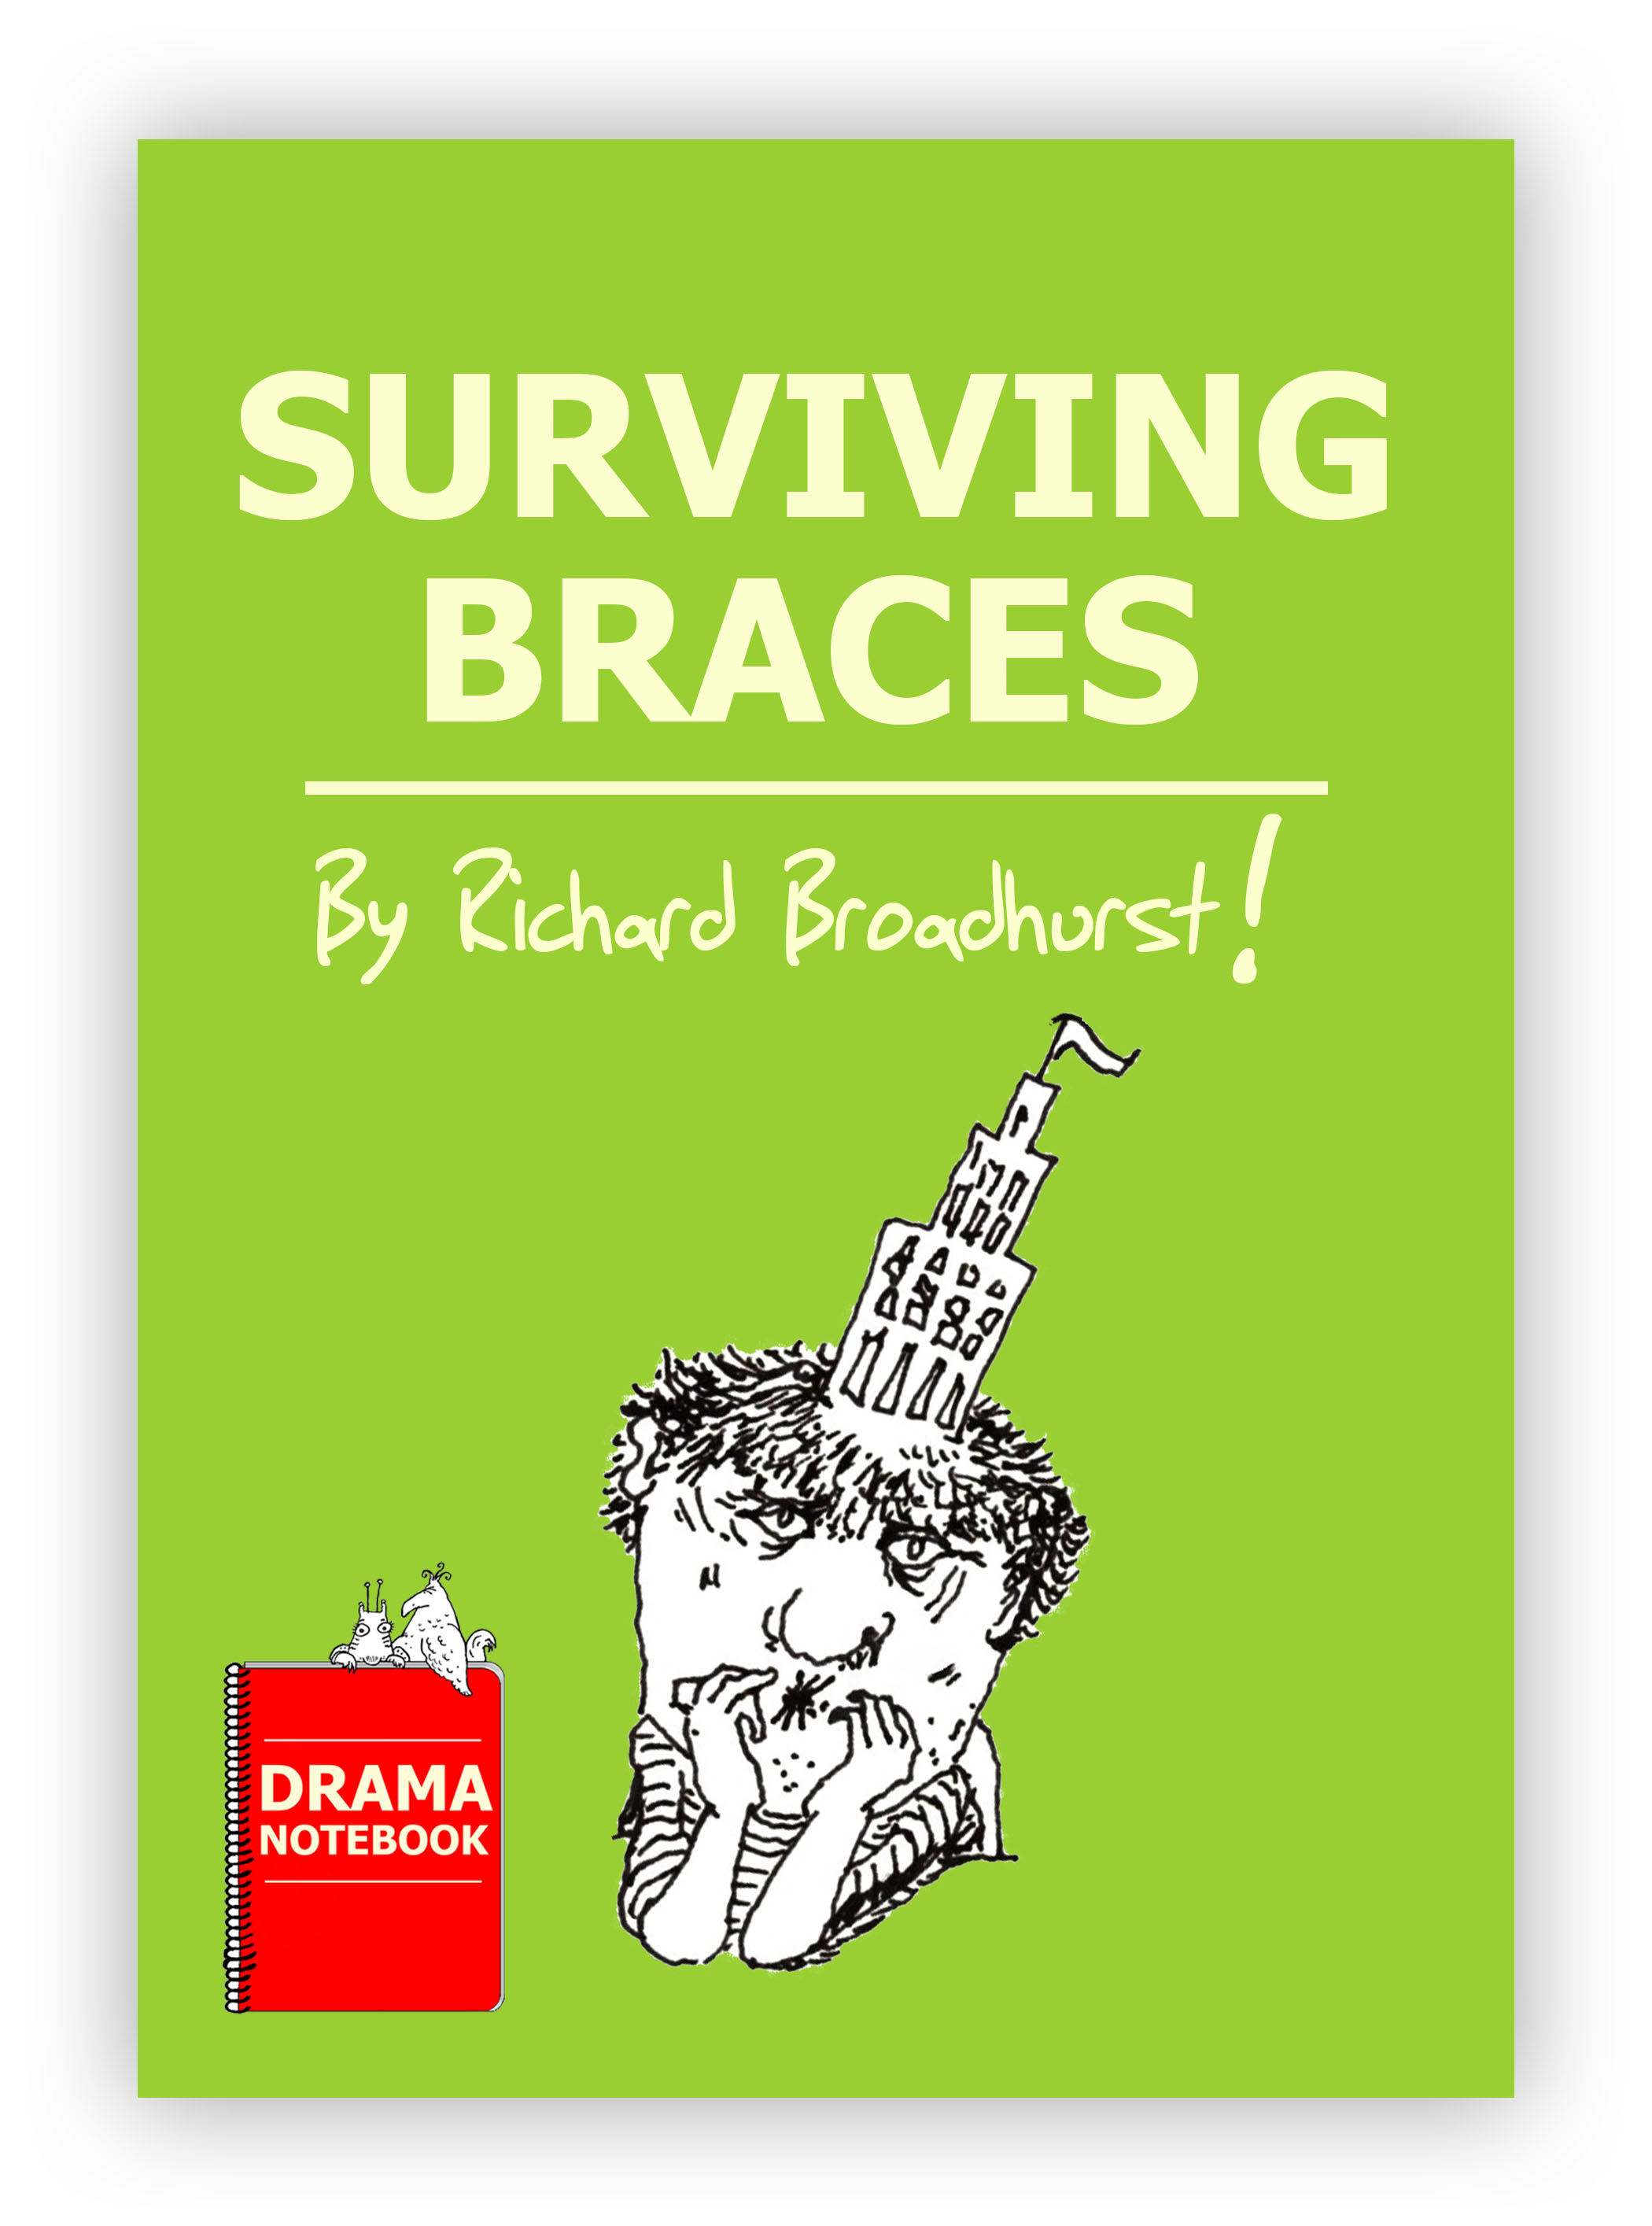 Royalty-free Play Script for Schools-Surviving Braces